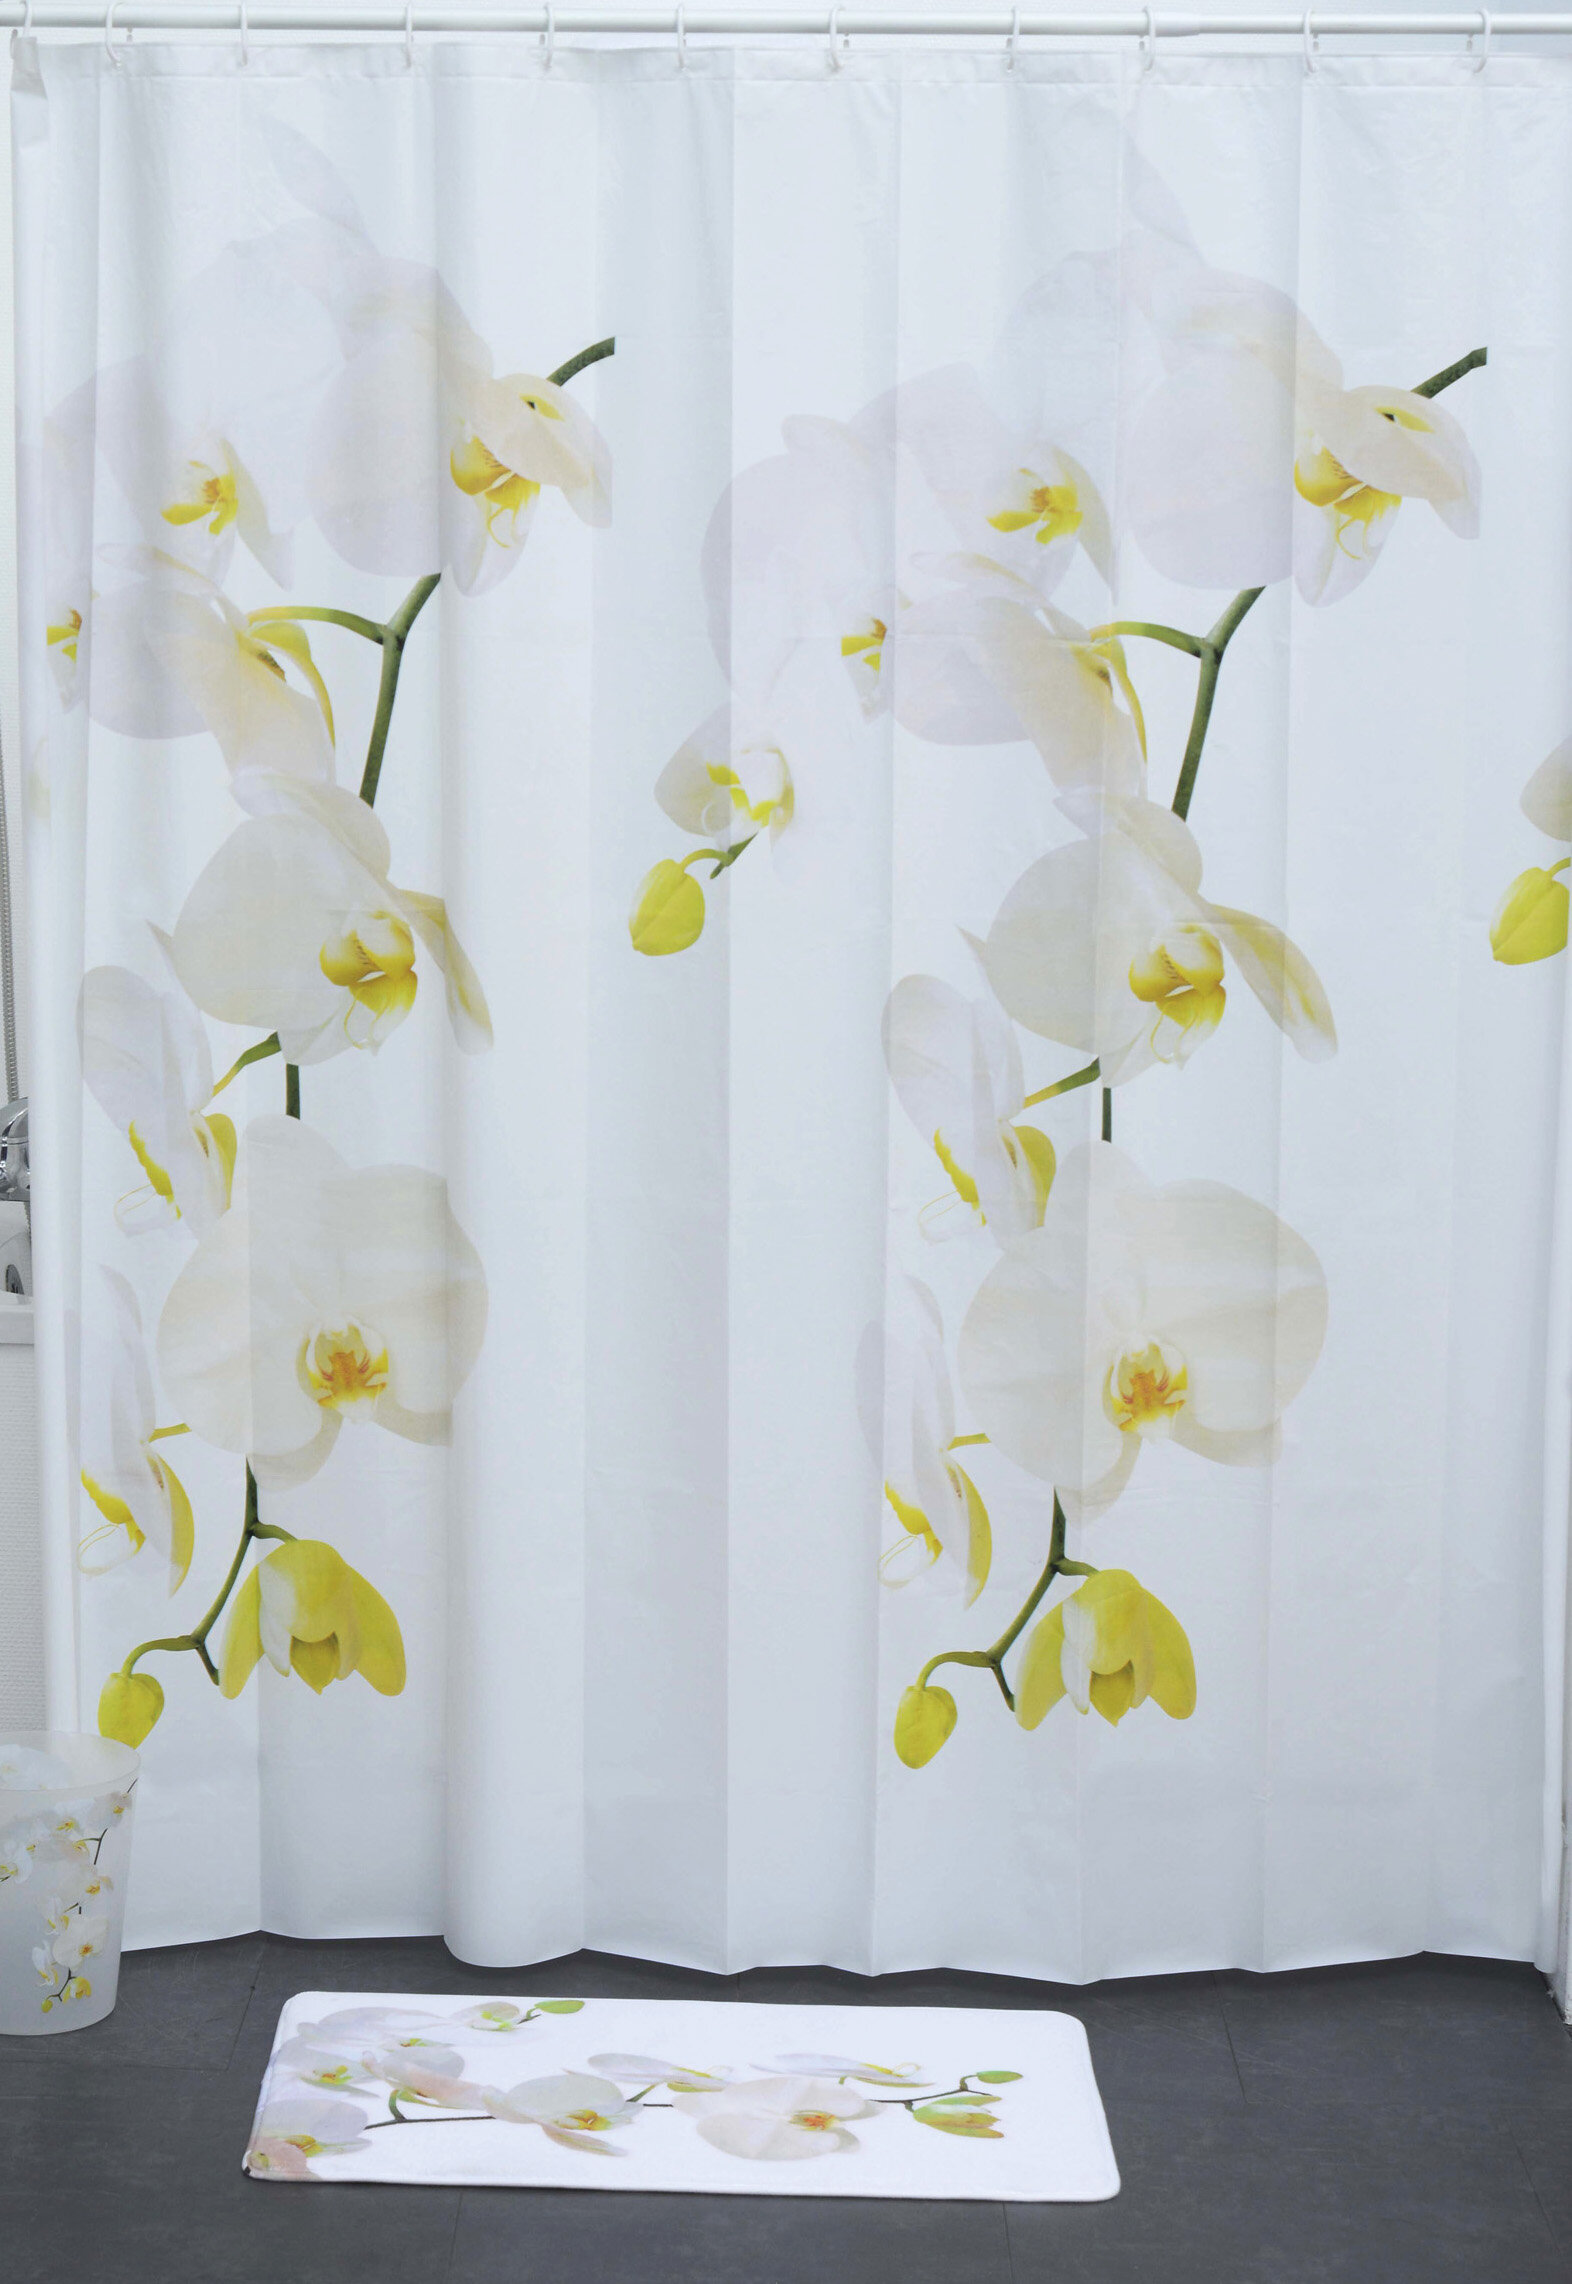 for bath design rod interior inspiring wall and yellow clear window bathroom soft metal area pattern striped bed curtain shower your transparent to curved rings blue beyond next white corner round tub plastic curtains fabric cotton